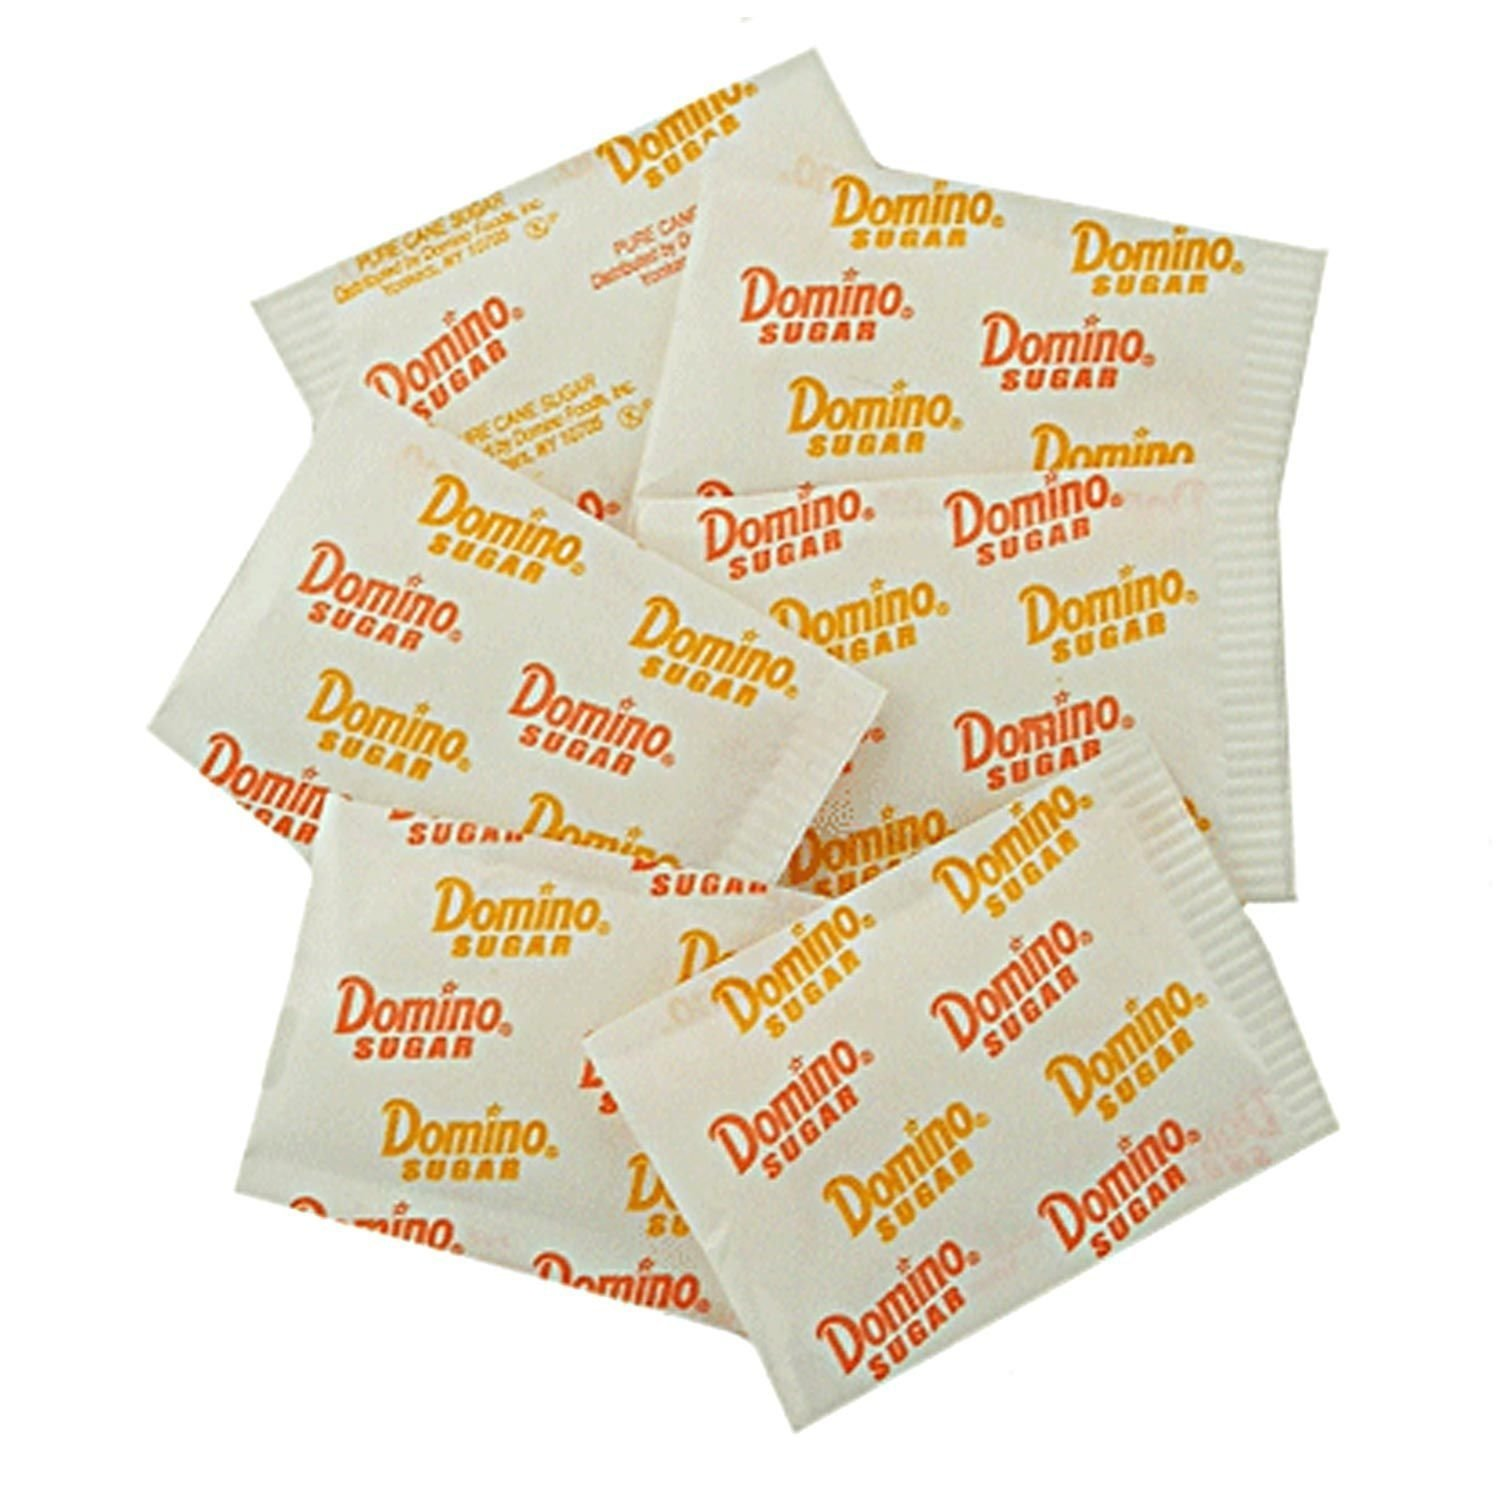 Domino Sugar Packets ~ Sold As 1 Reclosable container 100 ct.